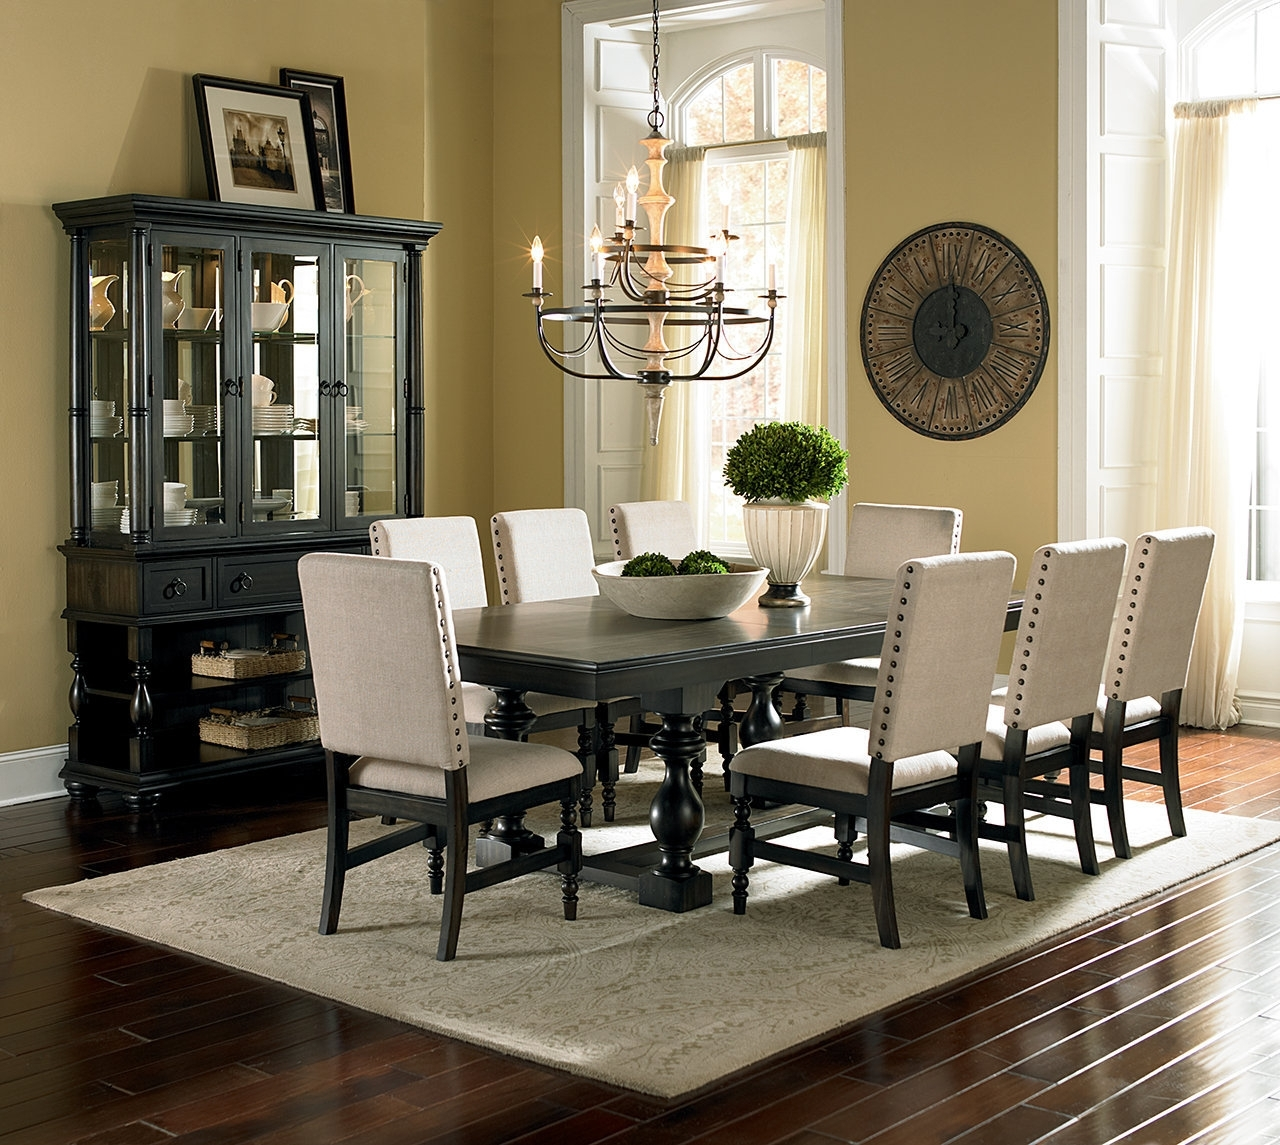 Norwood 6 Piece Rectangle Extension Dining Sets in Well-liked Plain Design Dining Room Sets With Fabric Chairs Norwood 6 Piece